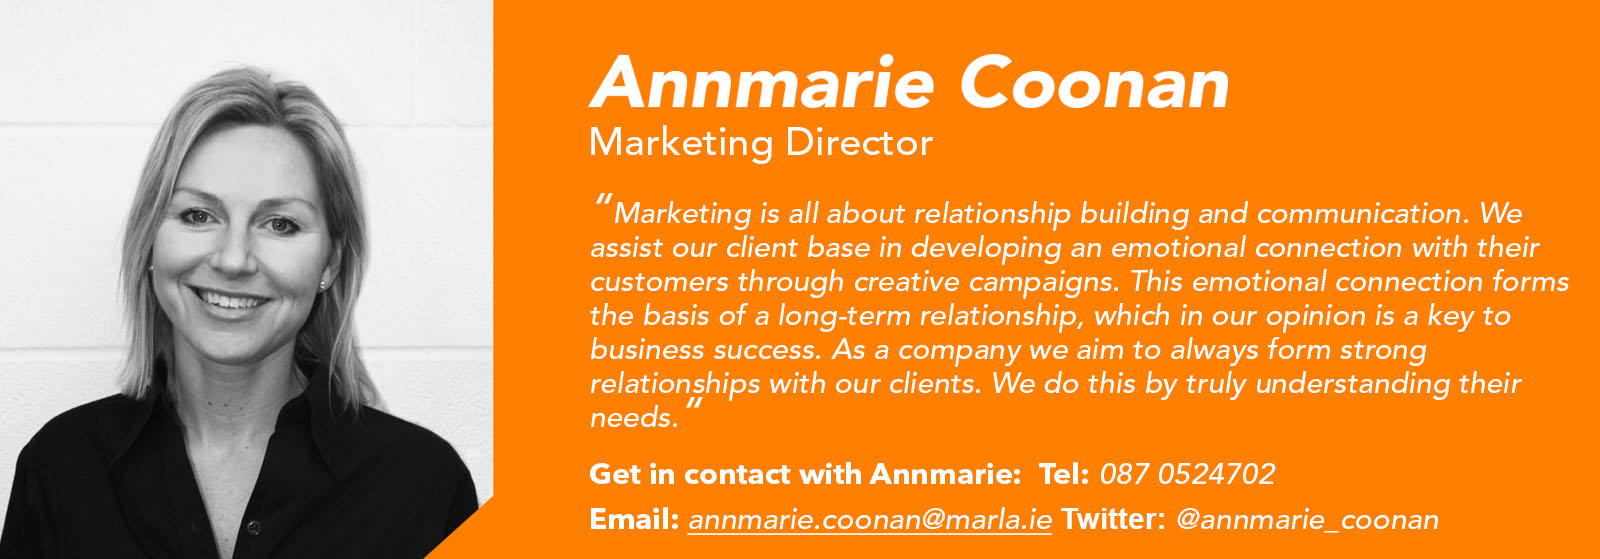 Annmarie Coonan - Marketing Manager - Márla Communications